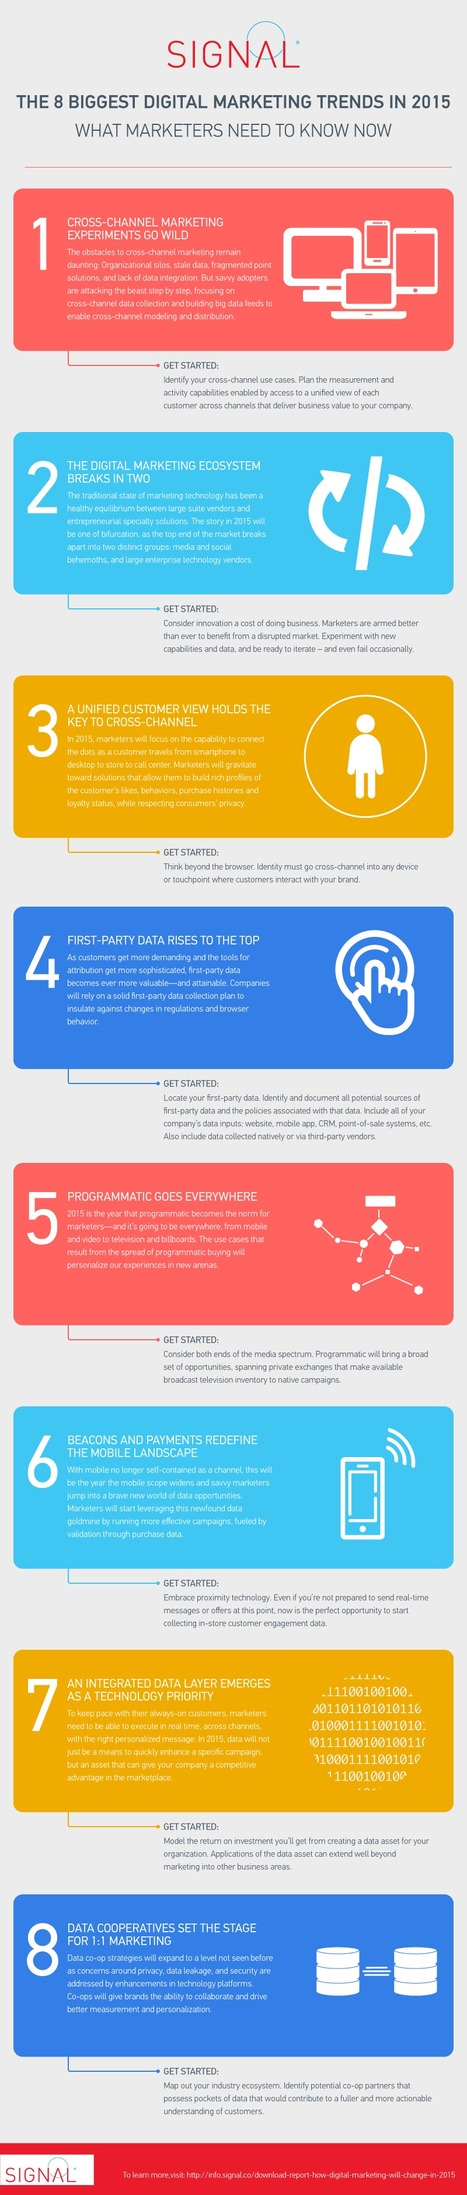 8 Advanced Trends In Social And Digital Marketing (Infographic) | digital marketing strategy | Scoop.it